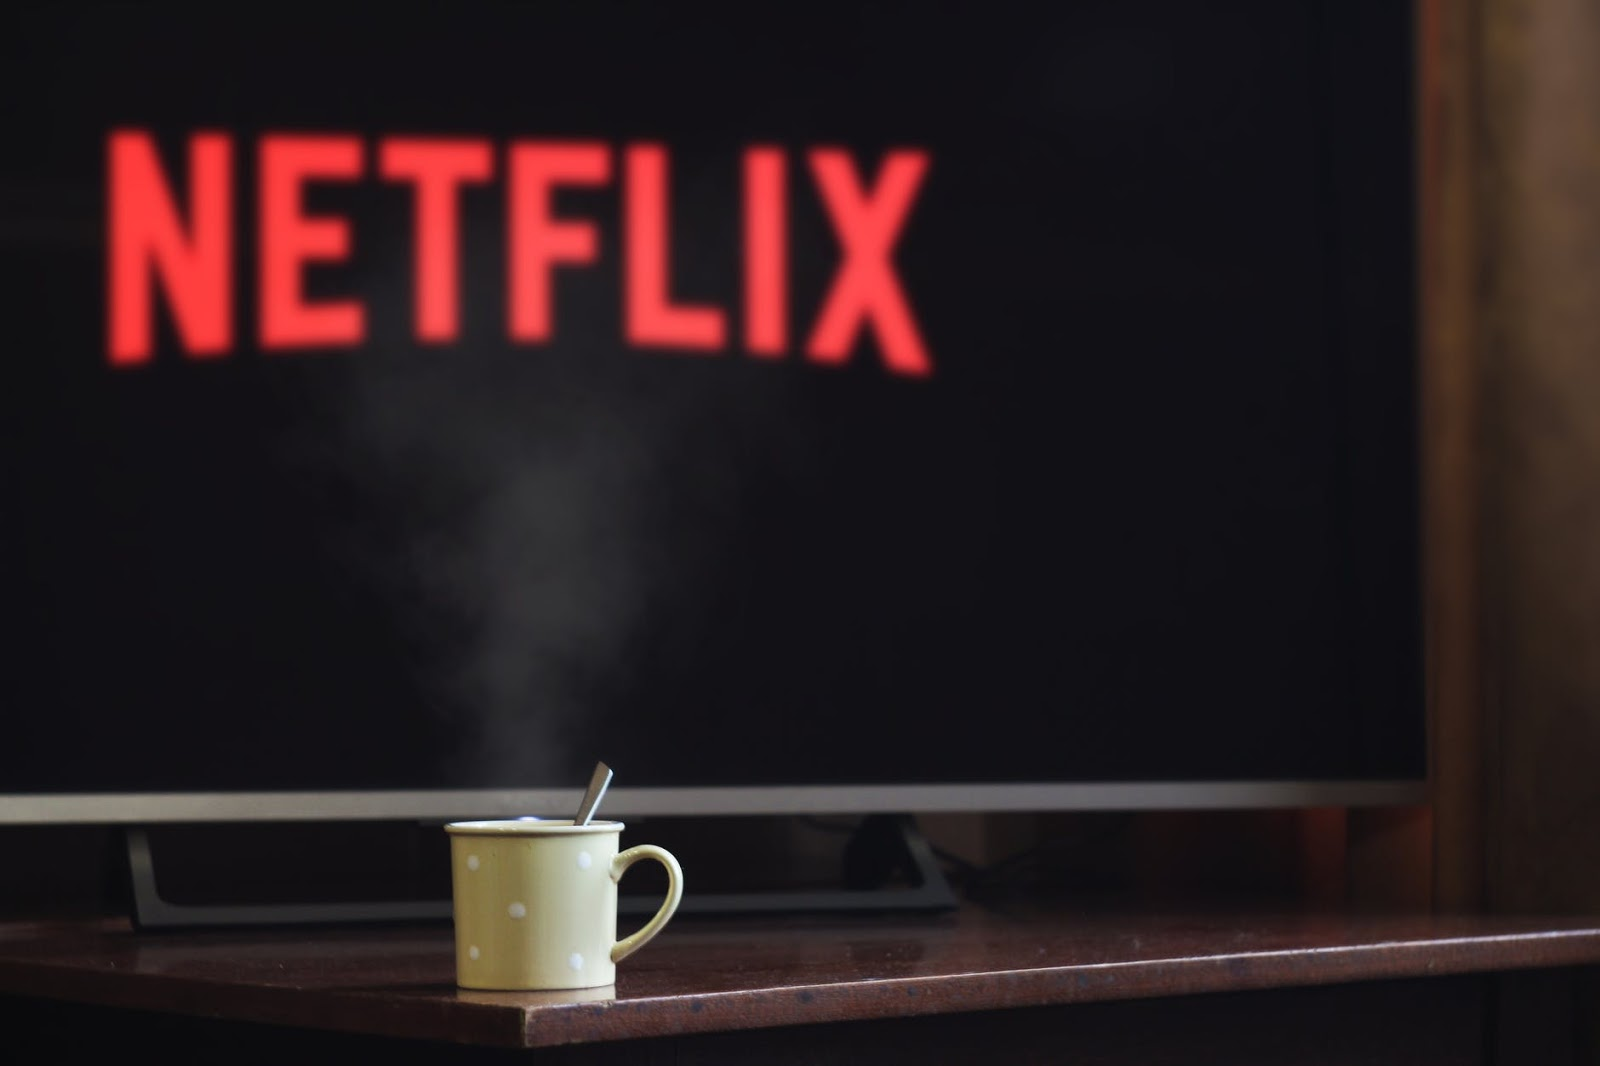 Netflix is still degrading HD video quality across Europe, angering some users